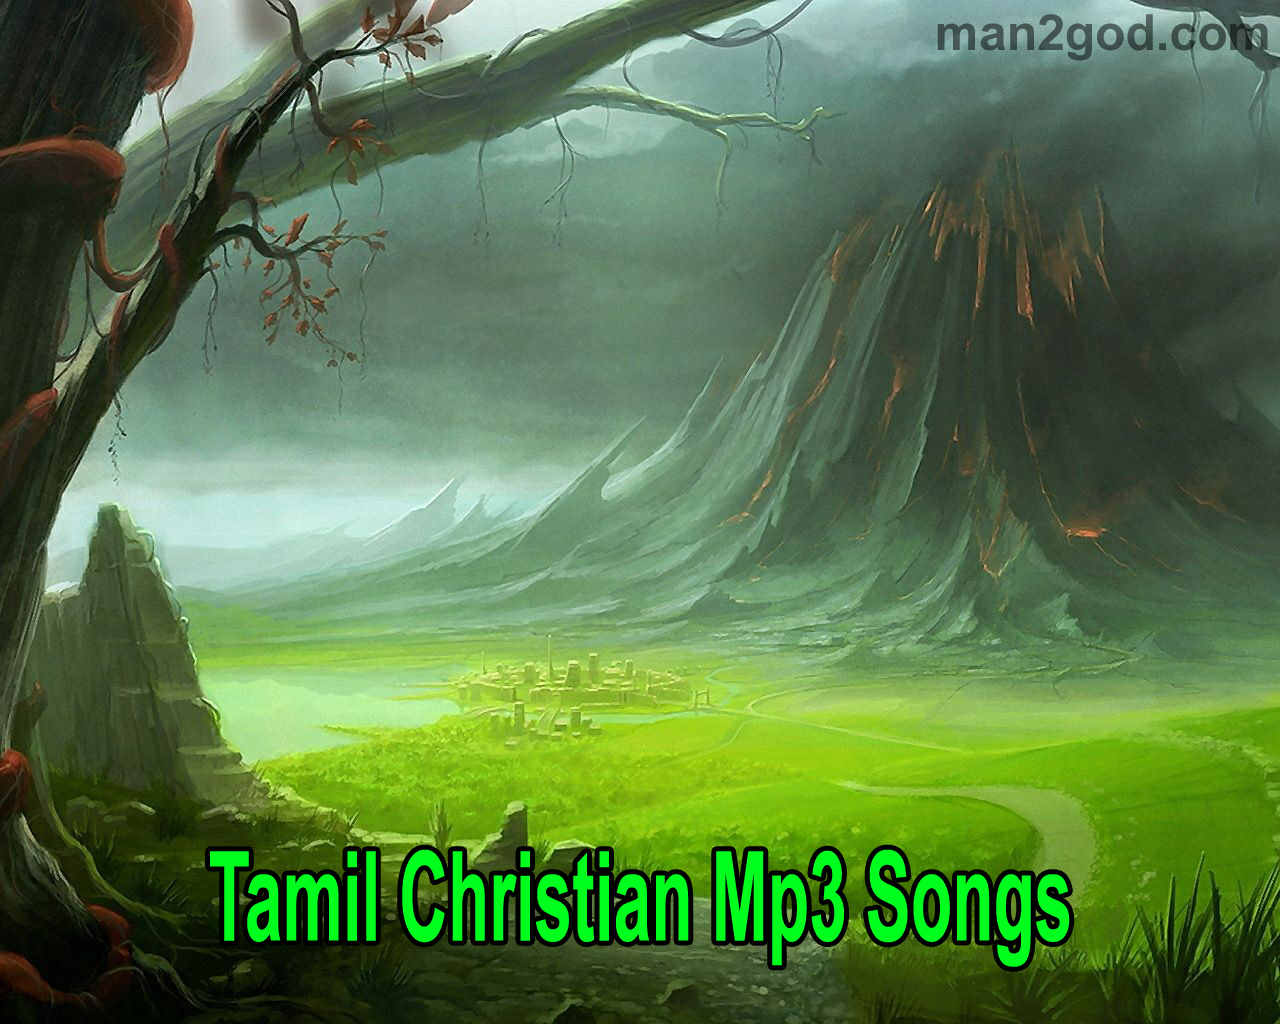 Tamil worship songs download